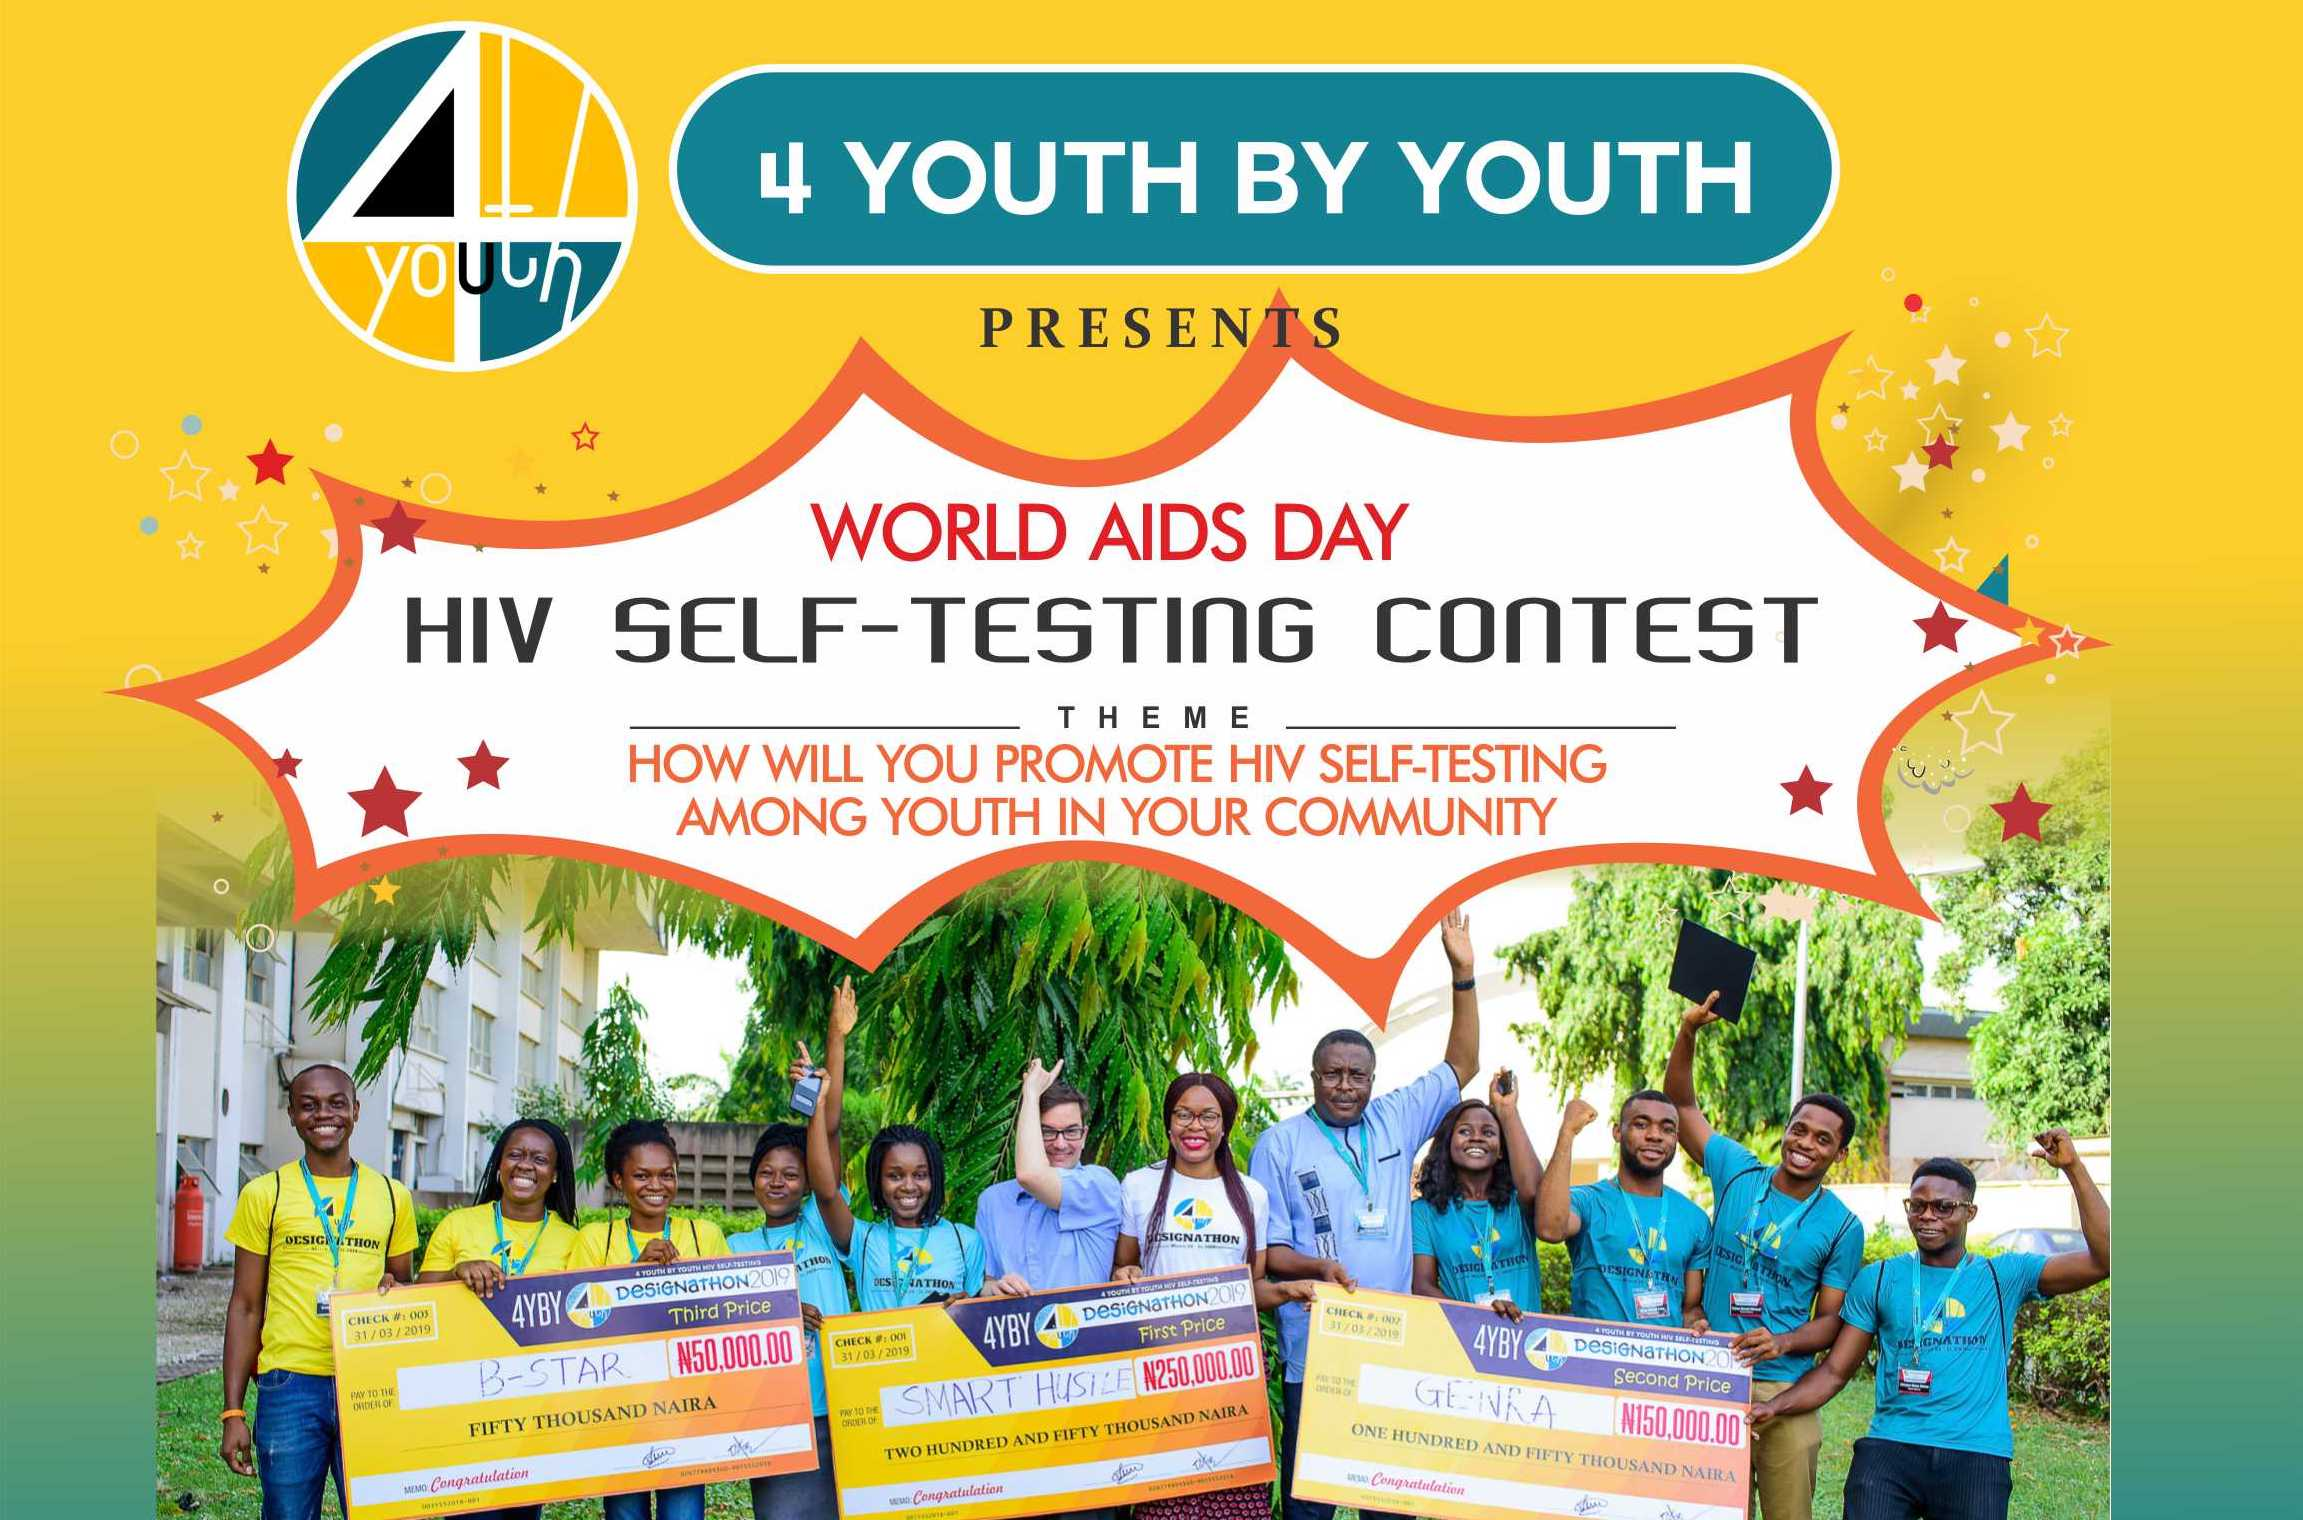 Worlds AIDS Day HIV Self-Testing Contest 2019 for Nigerians